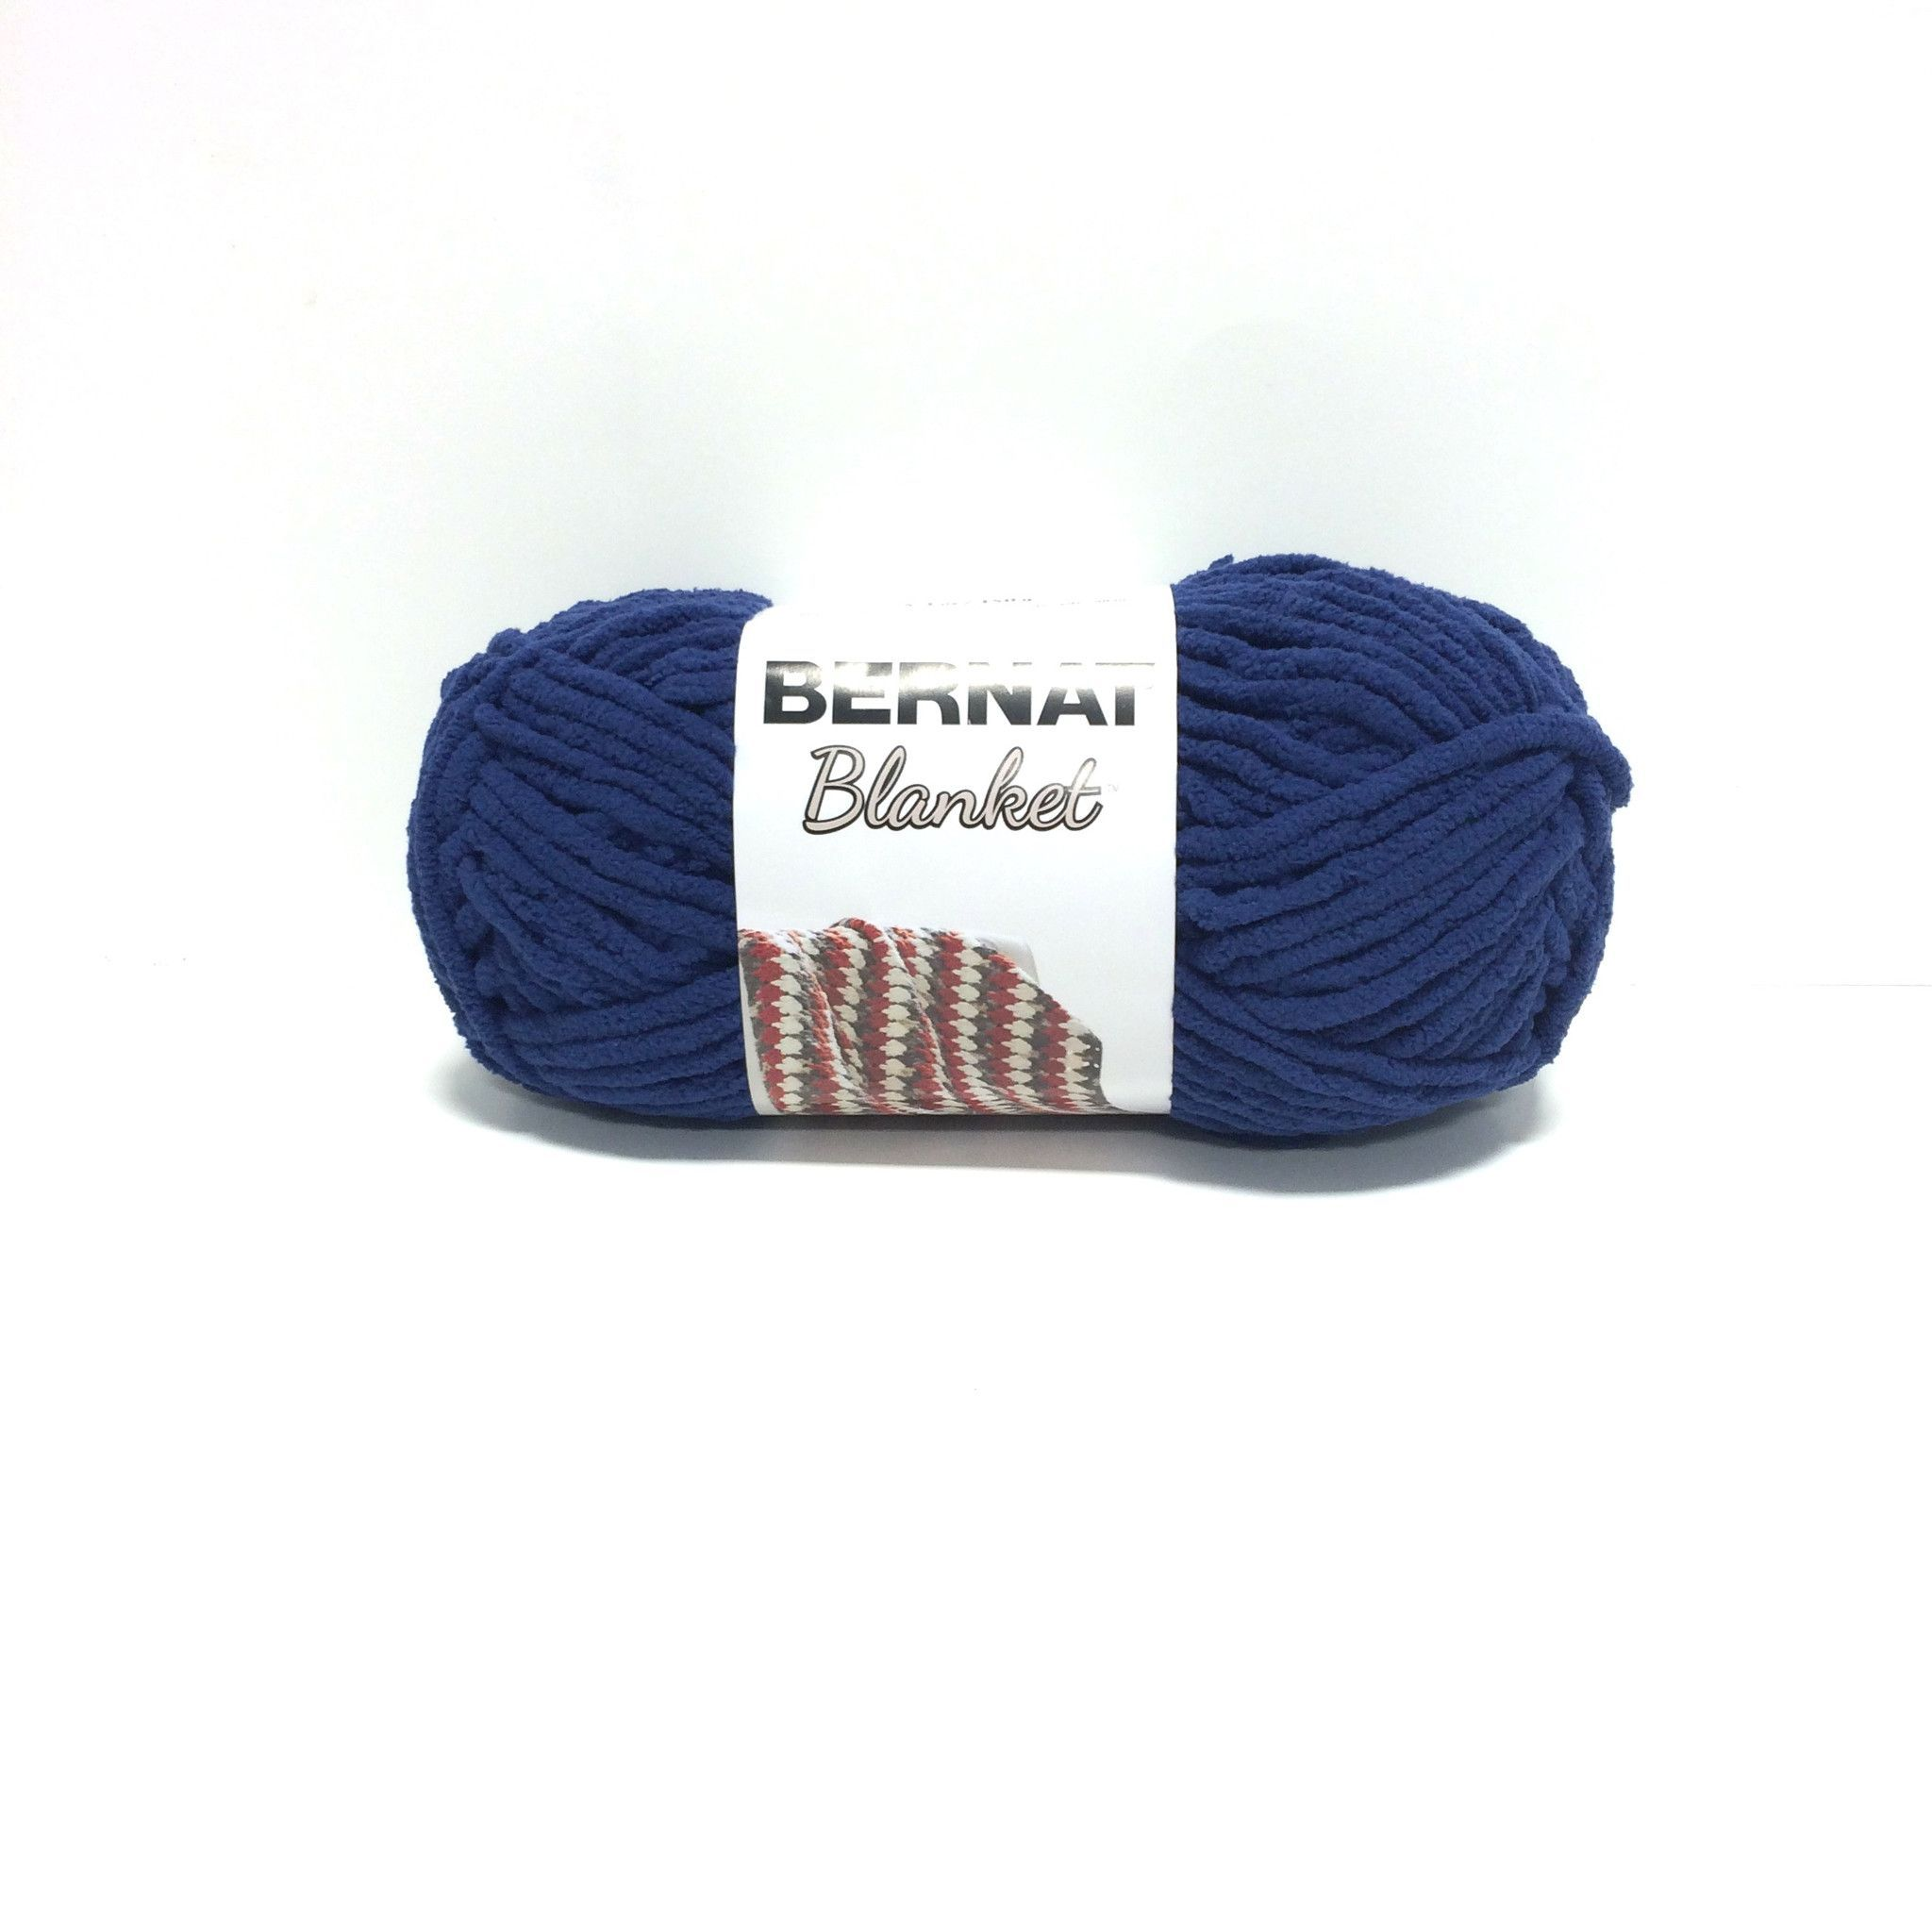 Bernat Blanket Yarn Navy 150 Skein | Products | Pinterest